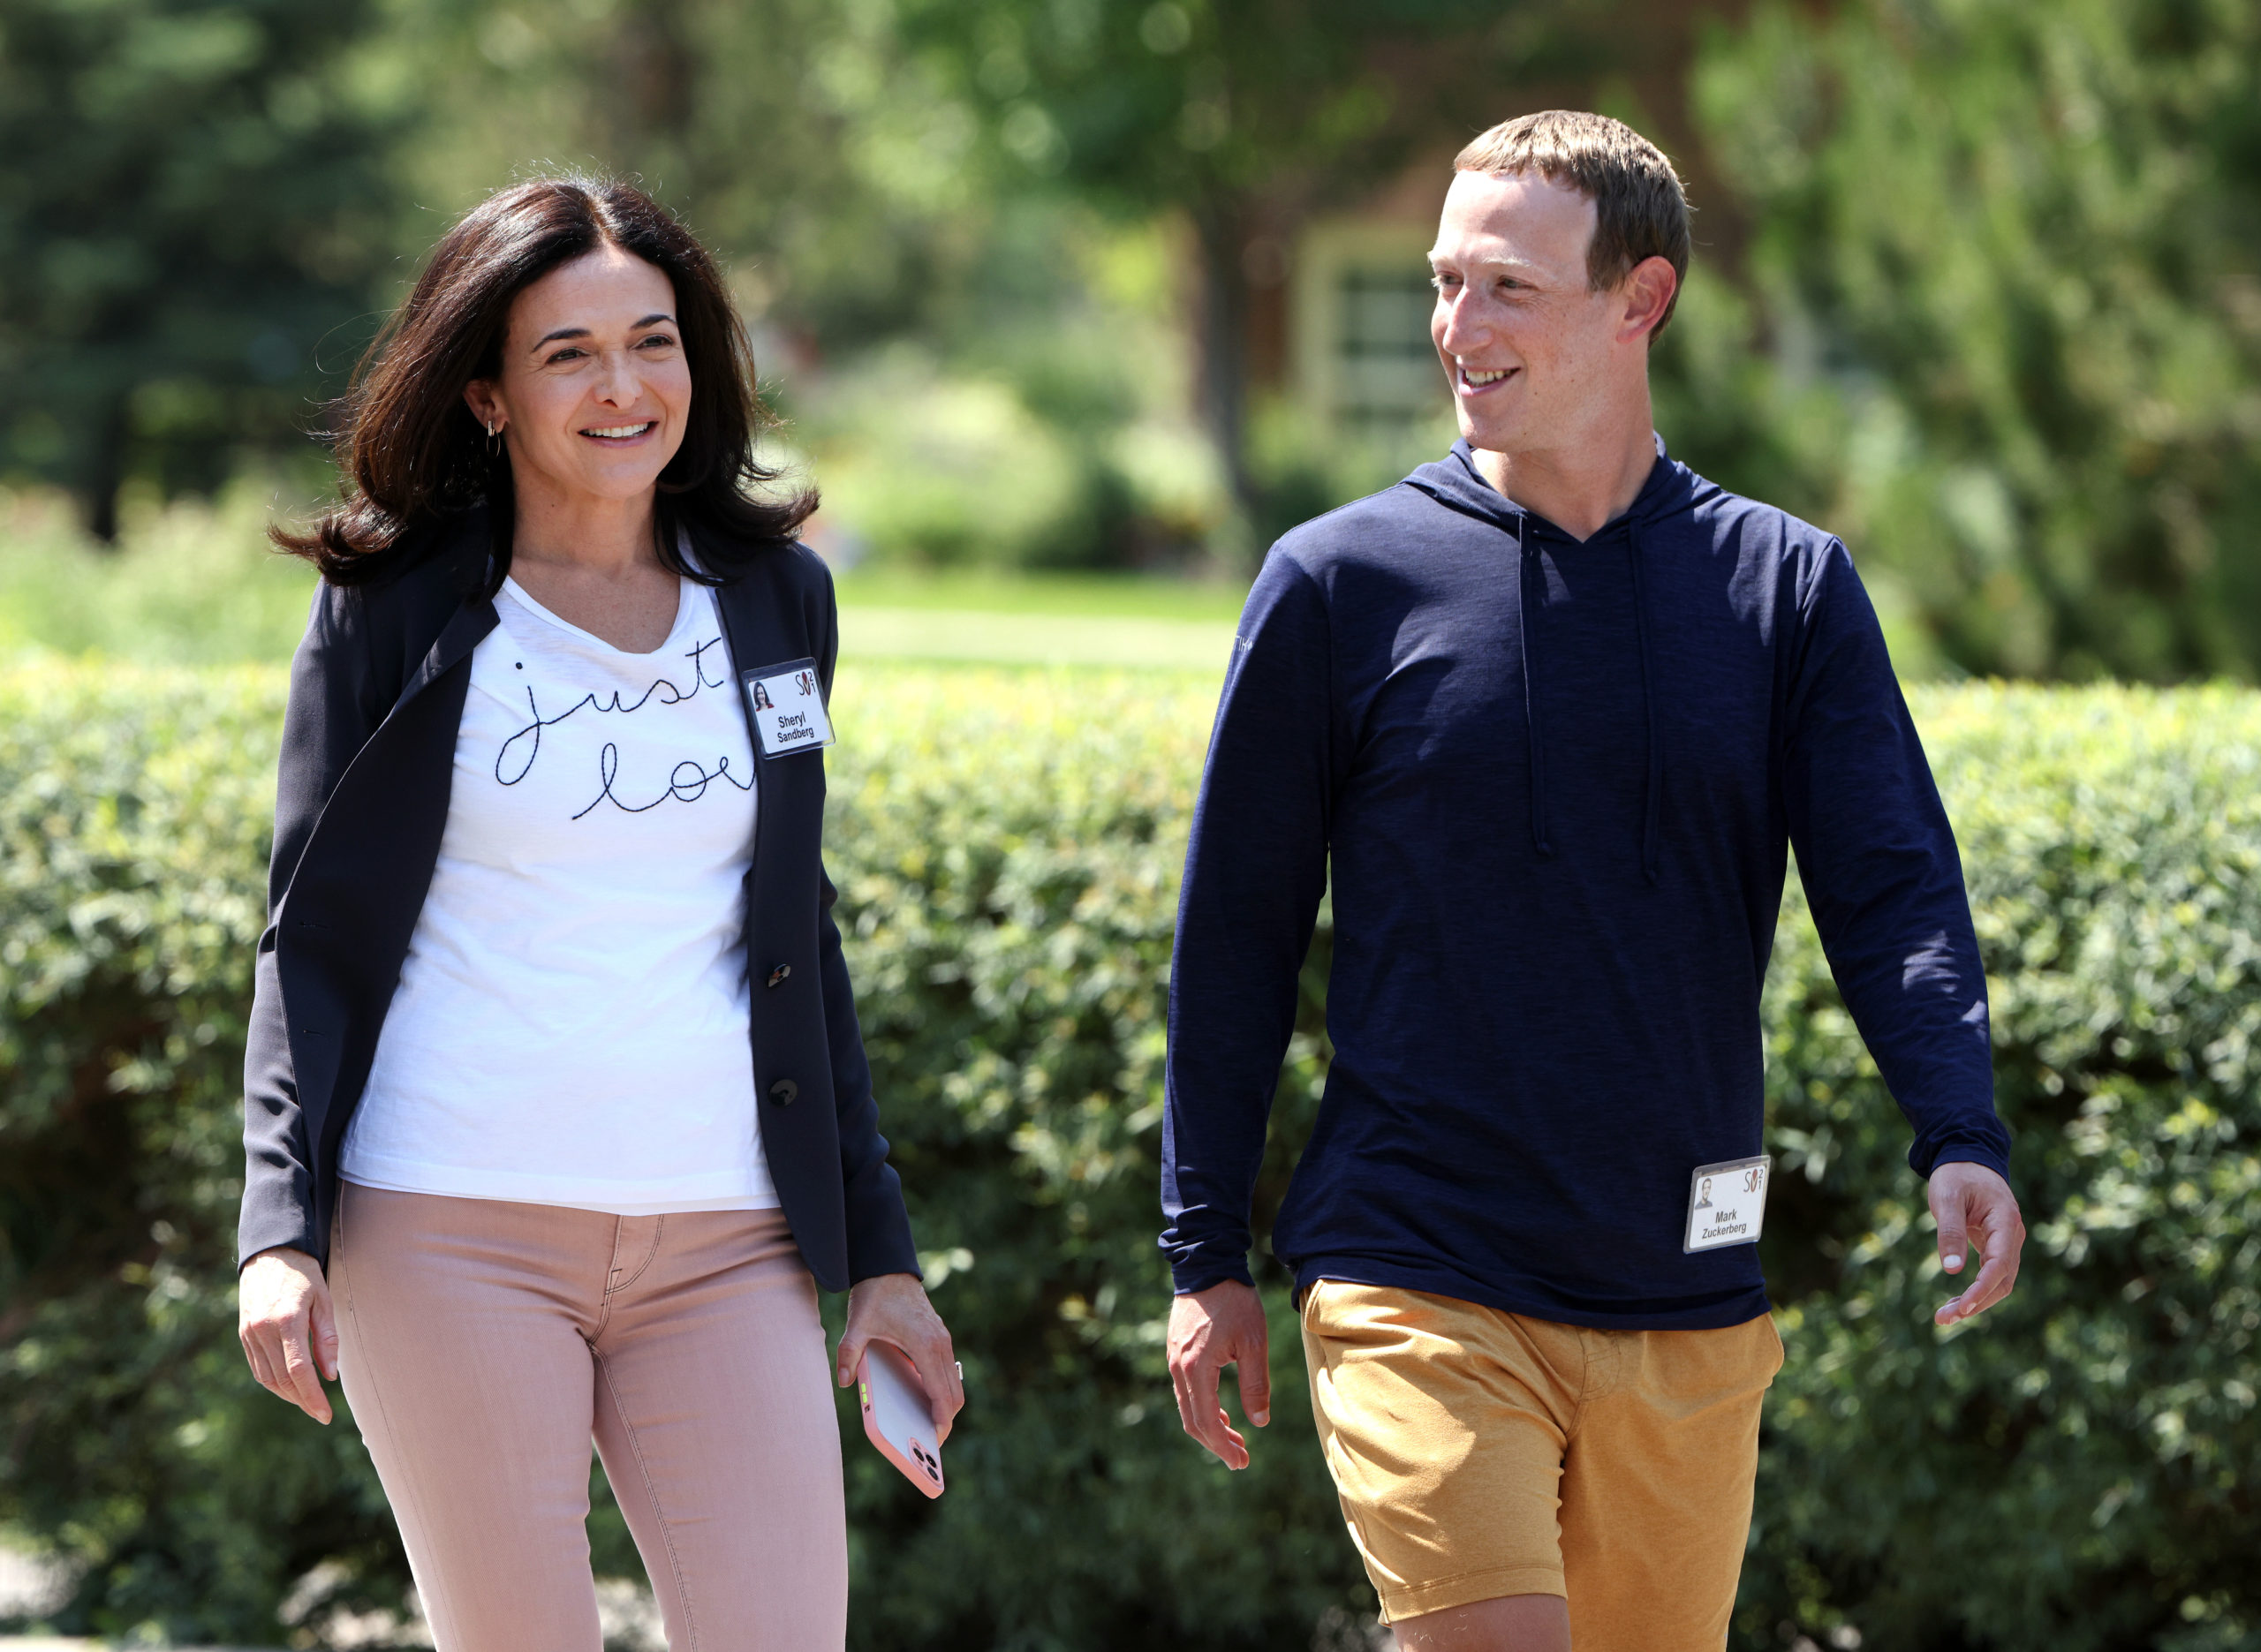 CEO of Facebook Mark Zuckerberg walks with COO of Facebook Sheryl Sandberg after a session at the Allen and Company Sun Valley Conference on July 08, 2021 in Sun Valley, Idaho. (Photo by Kevin Dietsch/Getty Images)